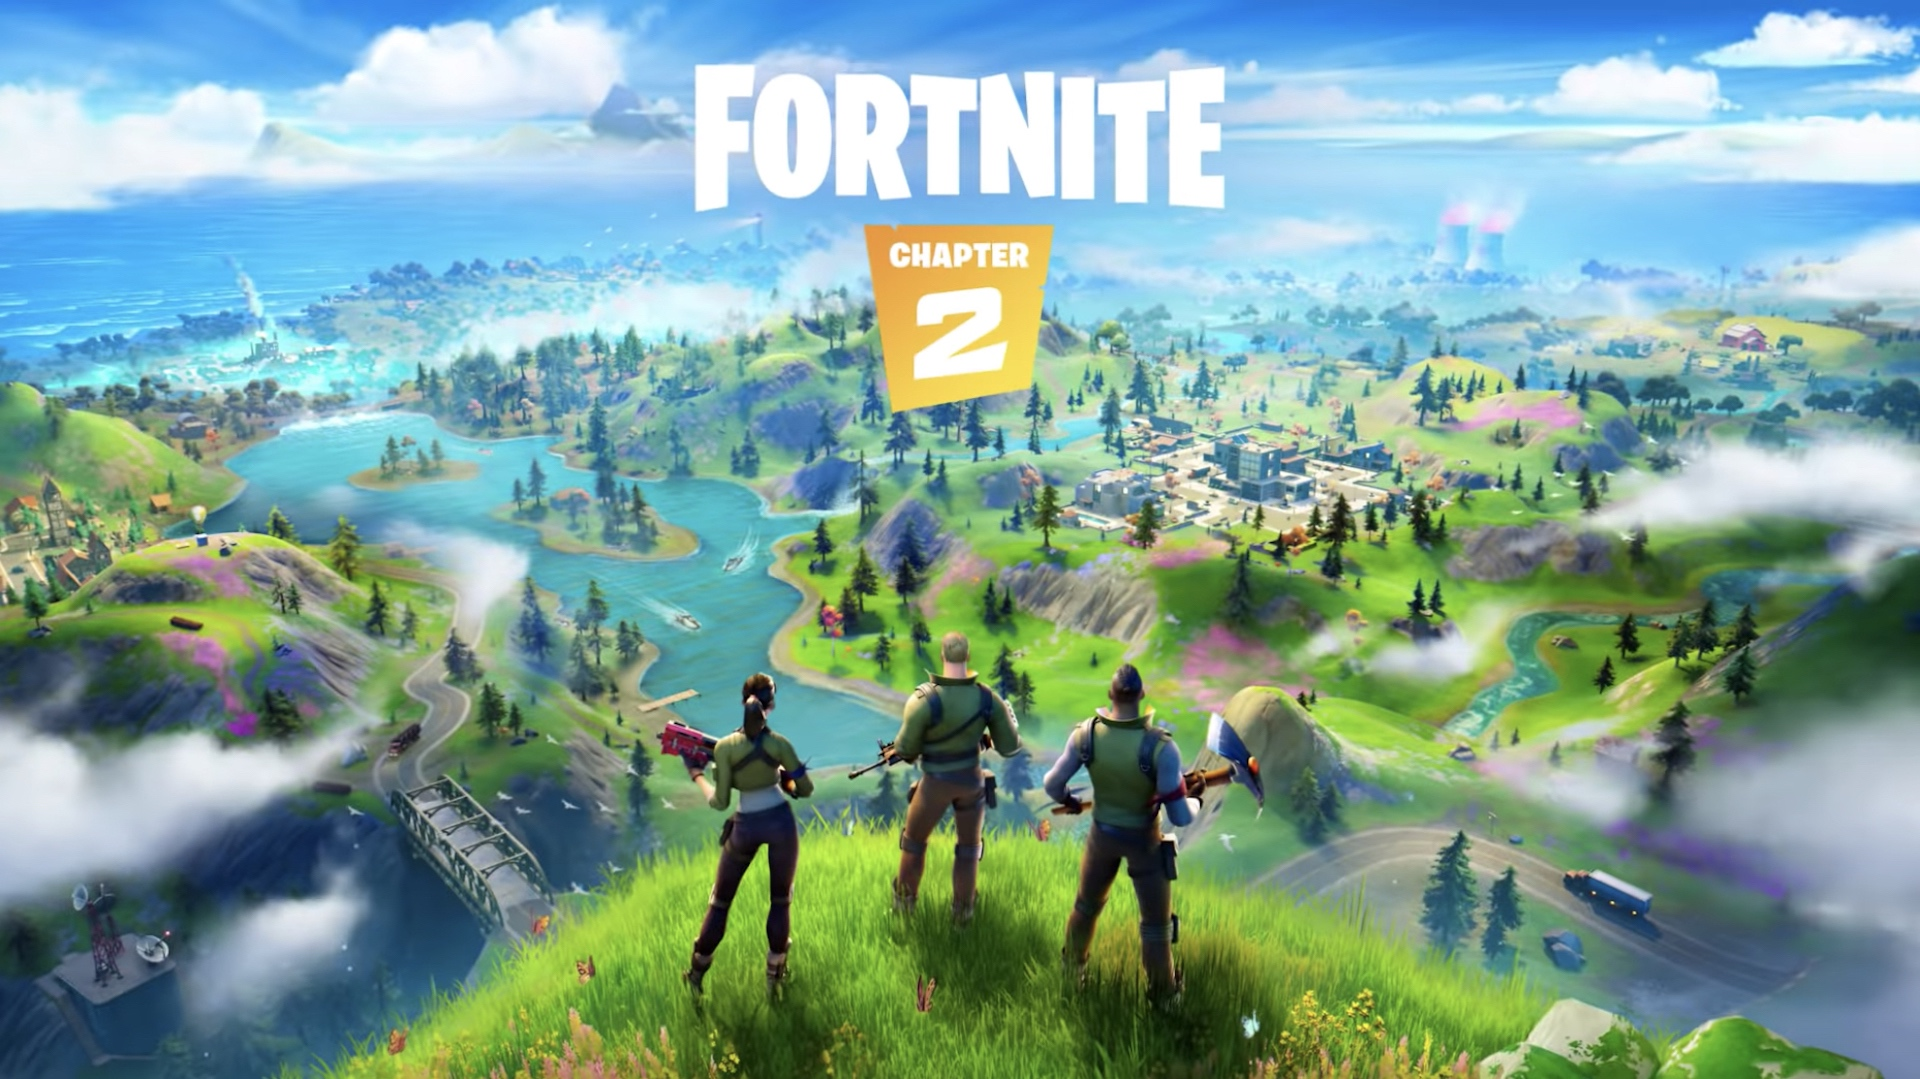 Fortnite: Chapter 2